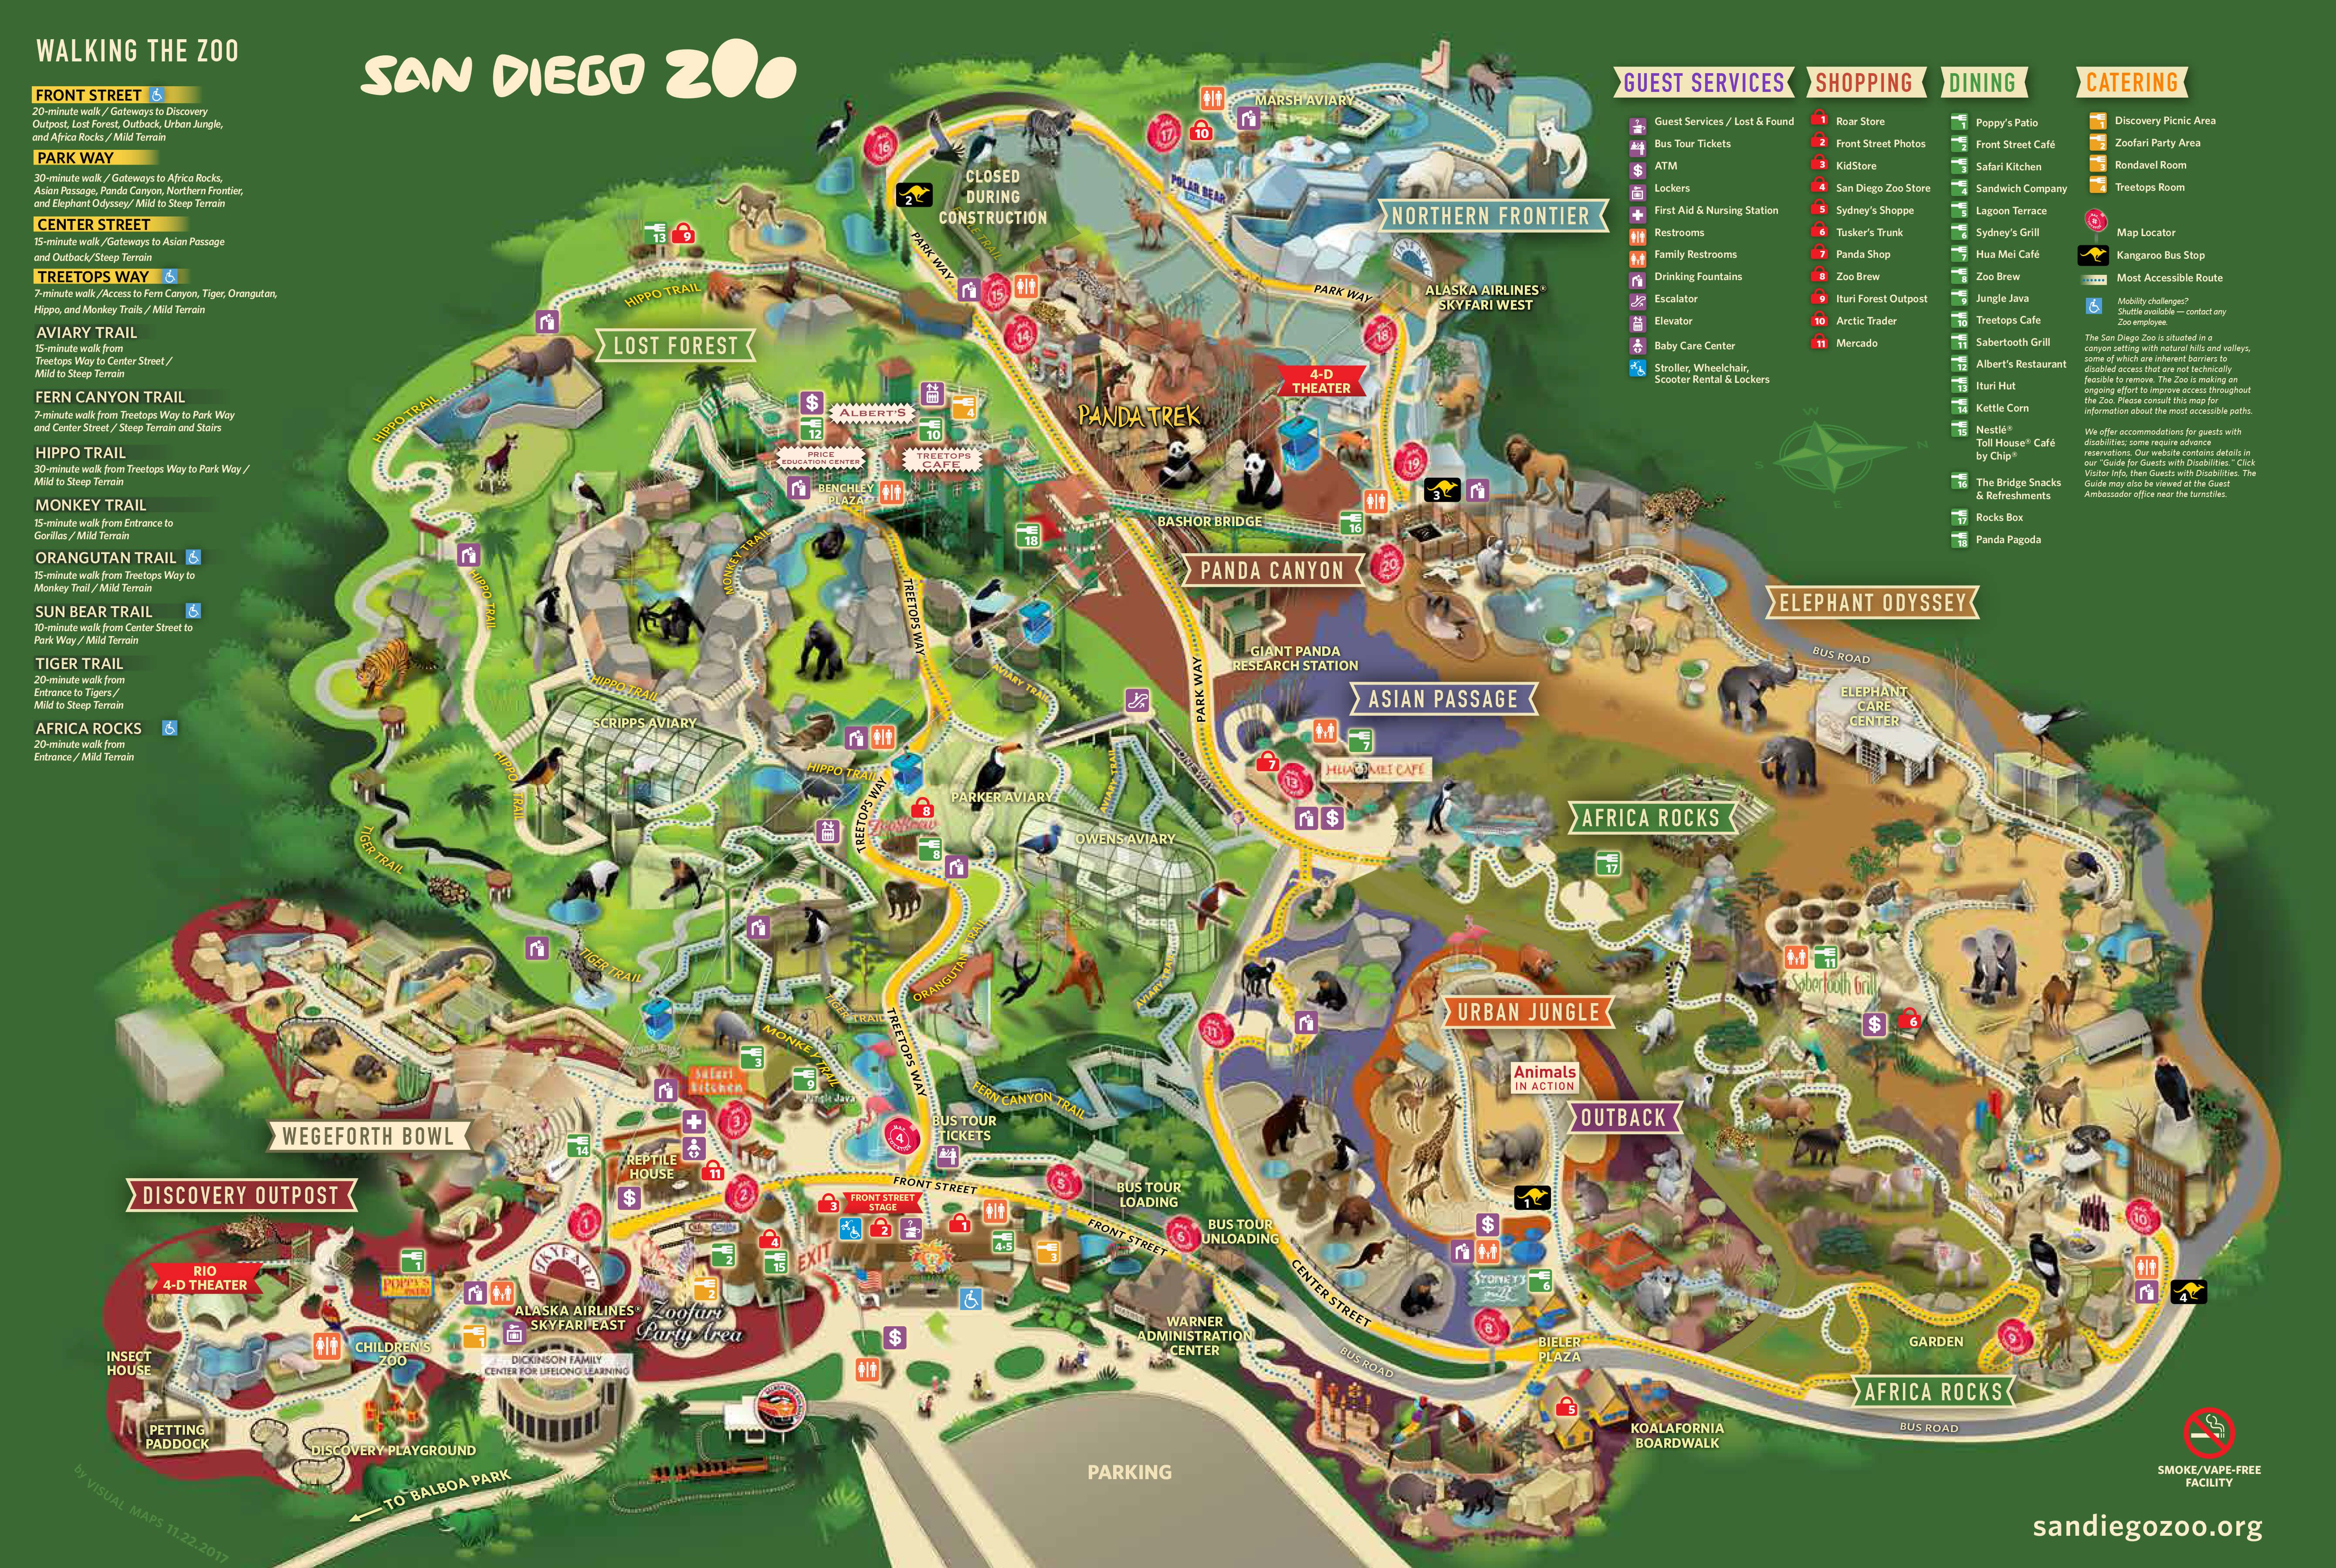 Use this handy San Diego Zoo map to locate your favorite